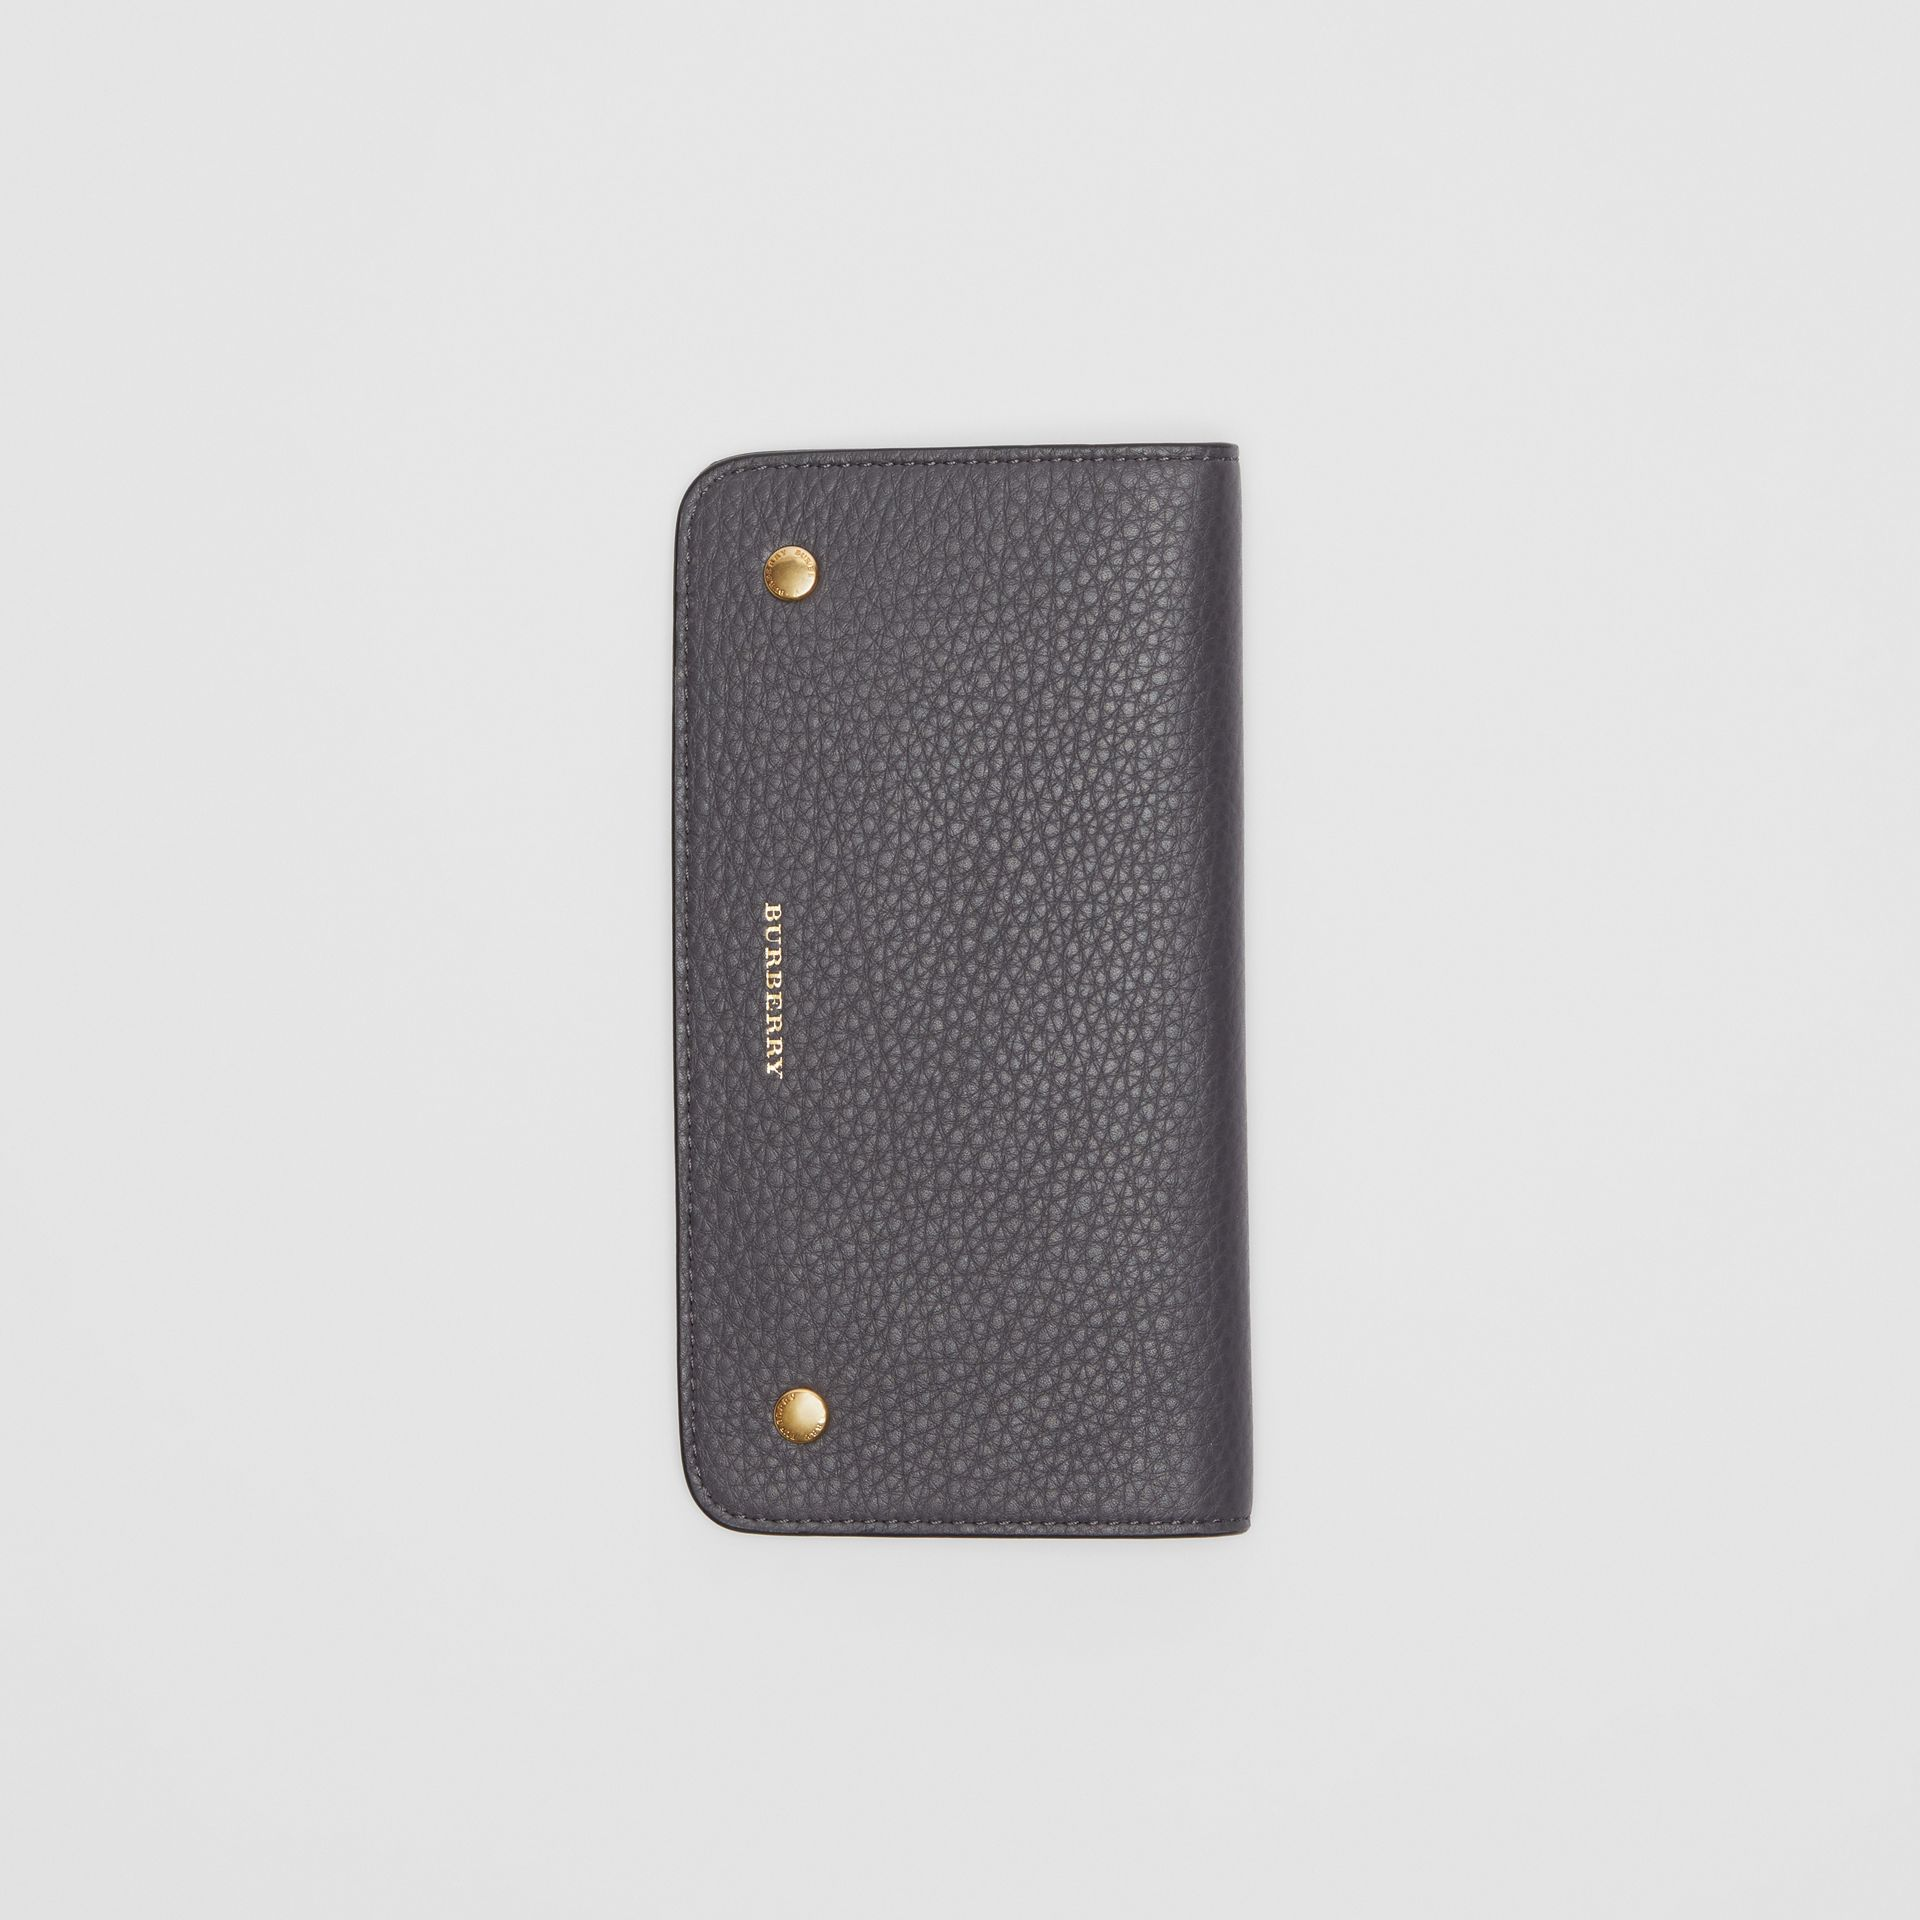 Leather Phone Wallet in Charcoal Grey - Women | Burberry Singapore - gallery image 3